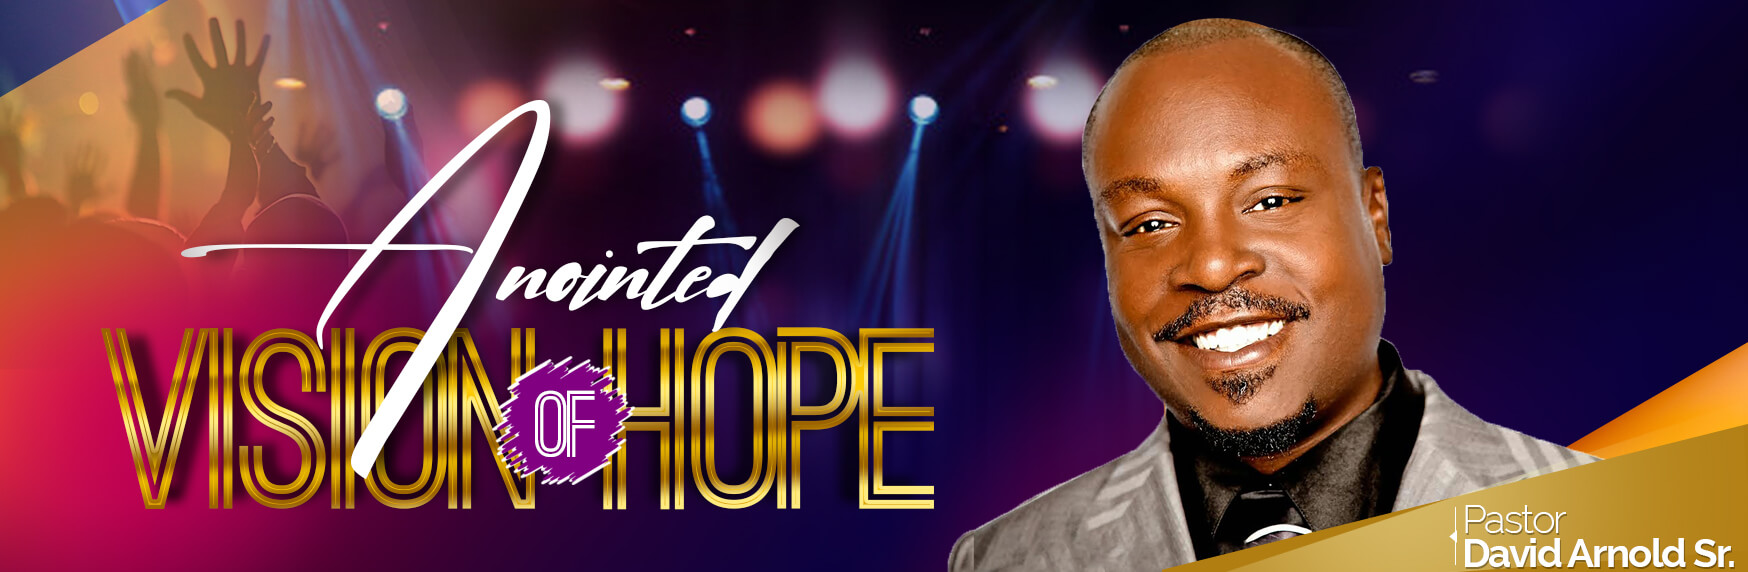 Anointed Vision of Hope Banner